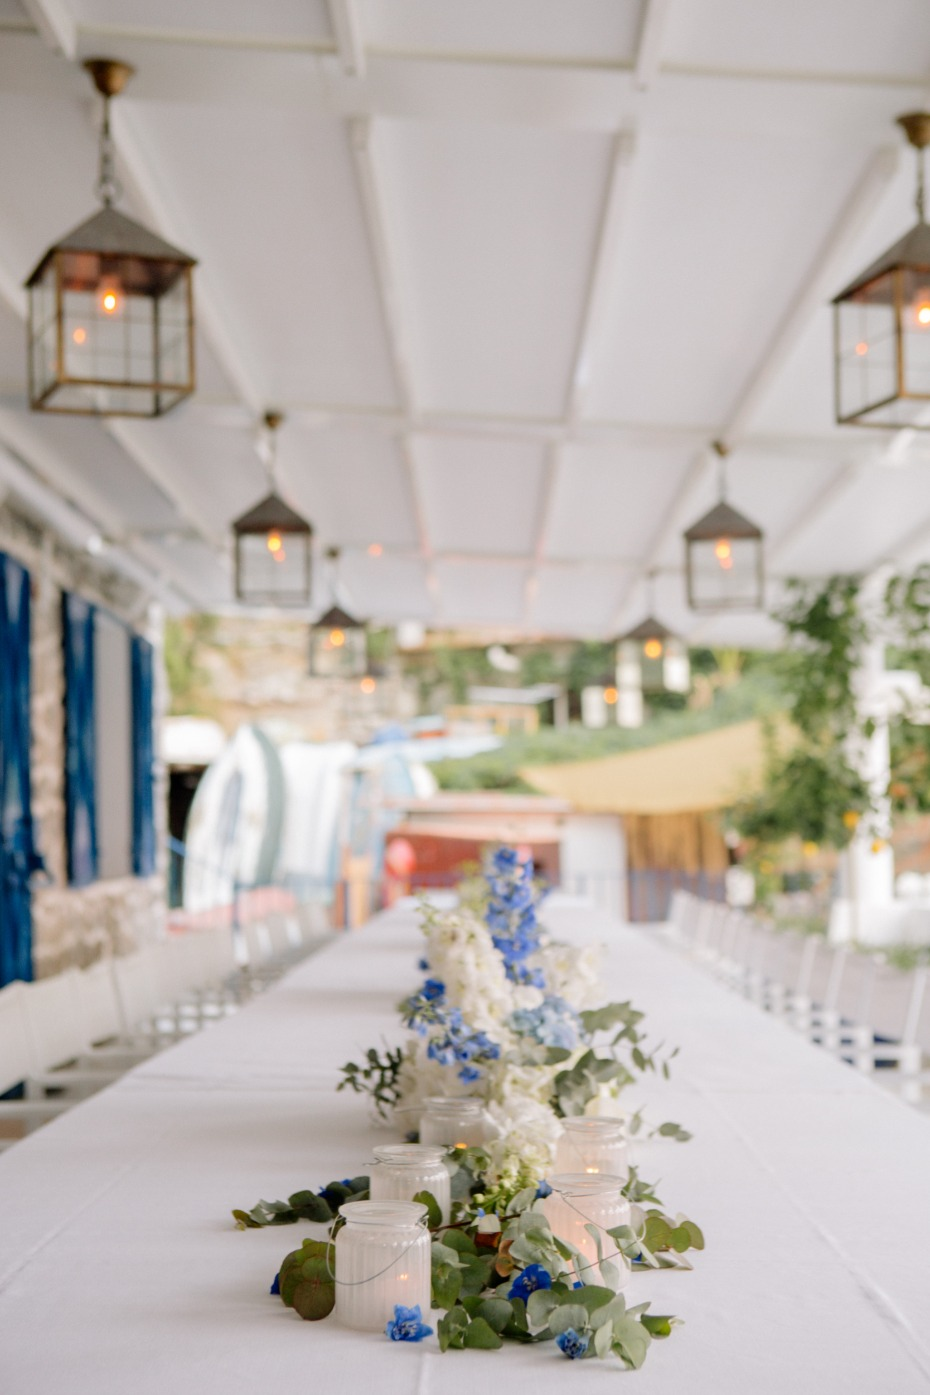 Romantic welcome dinner in blue and white